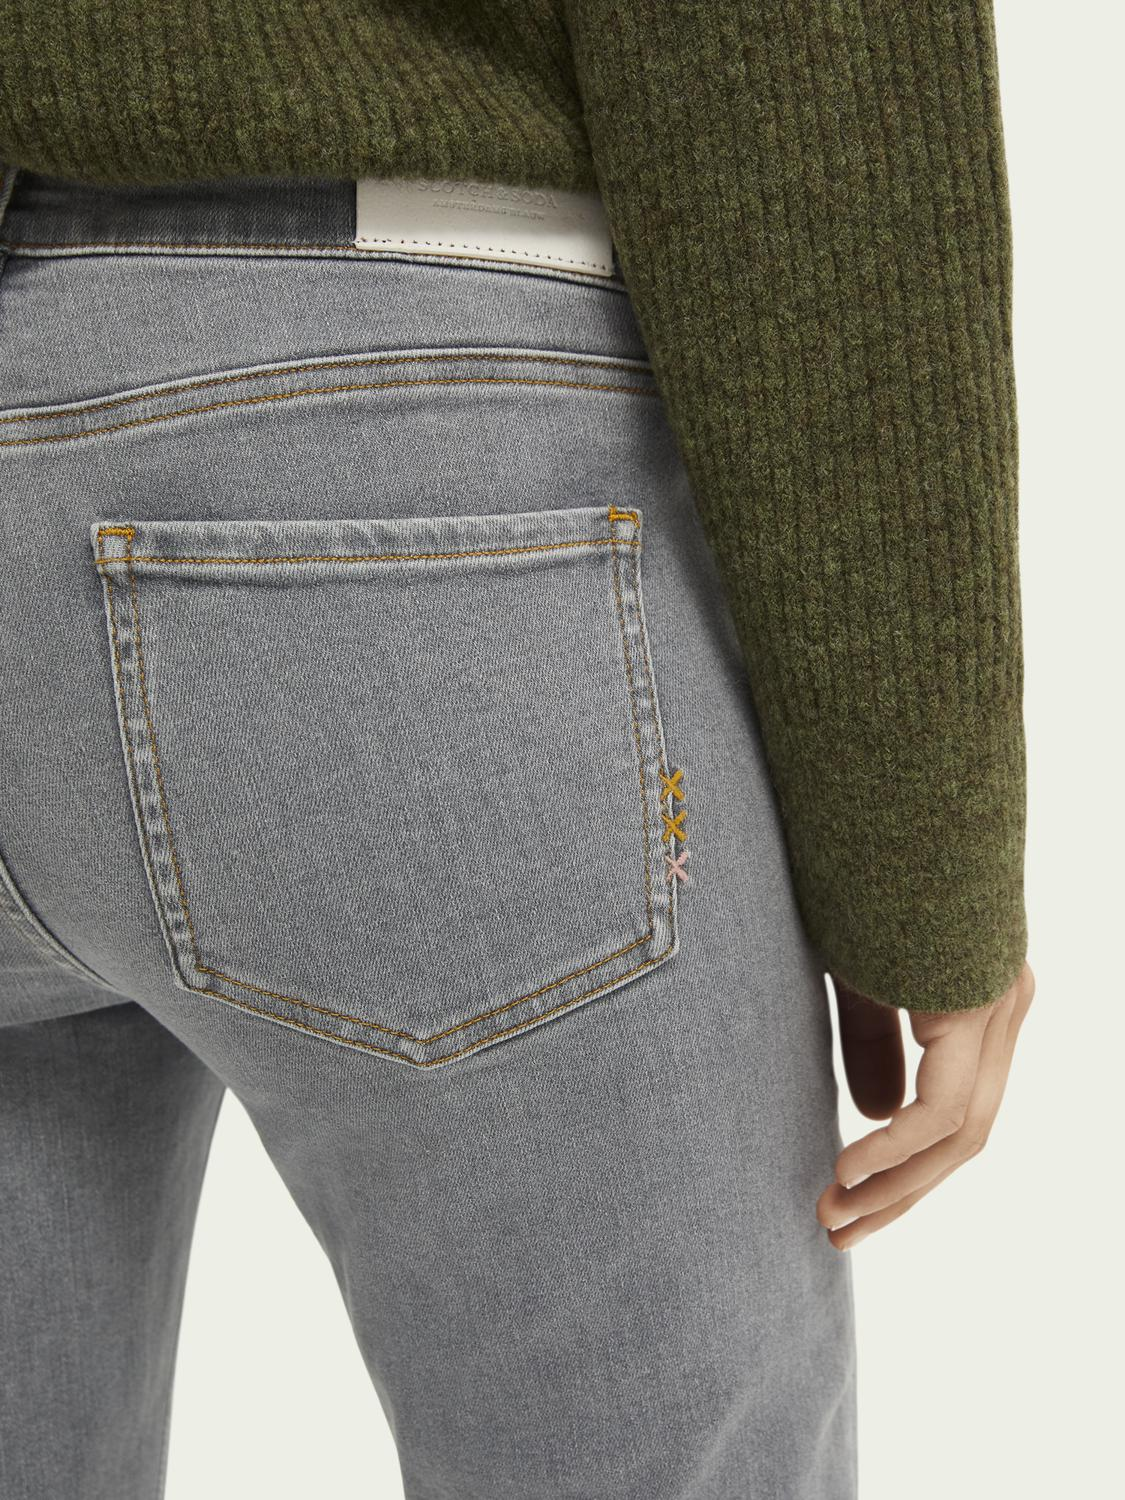 Bohemienne skinny-fit jeans —Nowhere to go 4